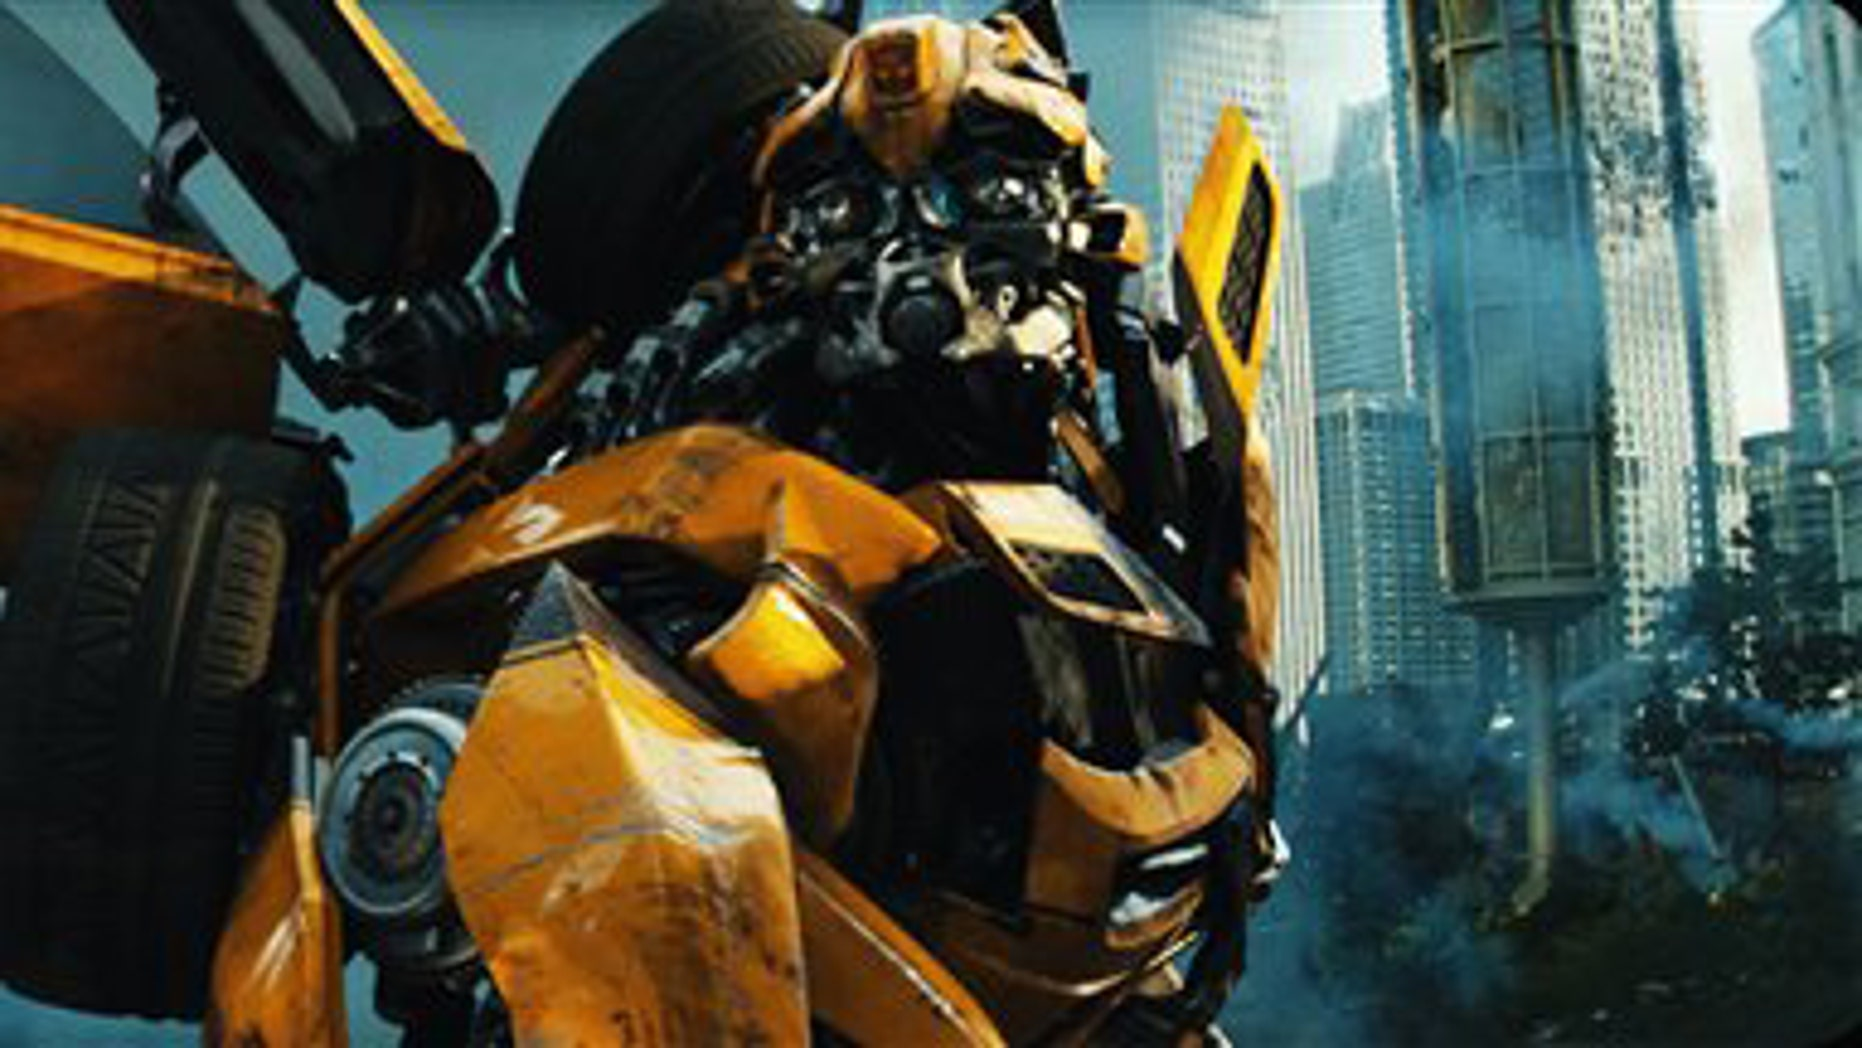 """In this publicity image released by Paramount Pictures, Bumblebee is shown in a scene from """"Transformers: Dark of the Moon."""""""